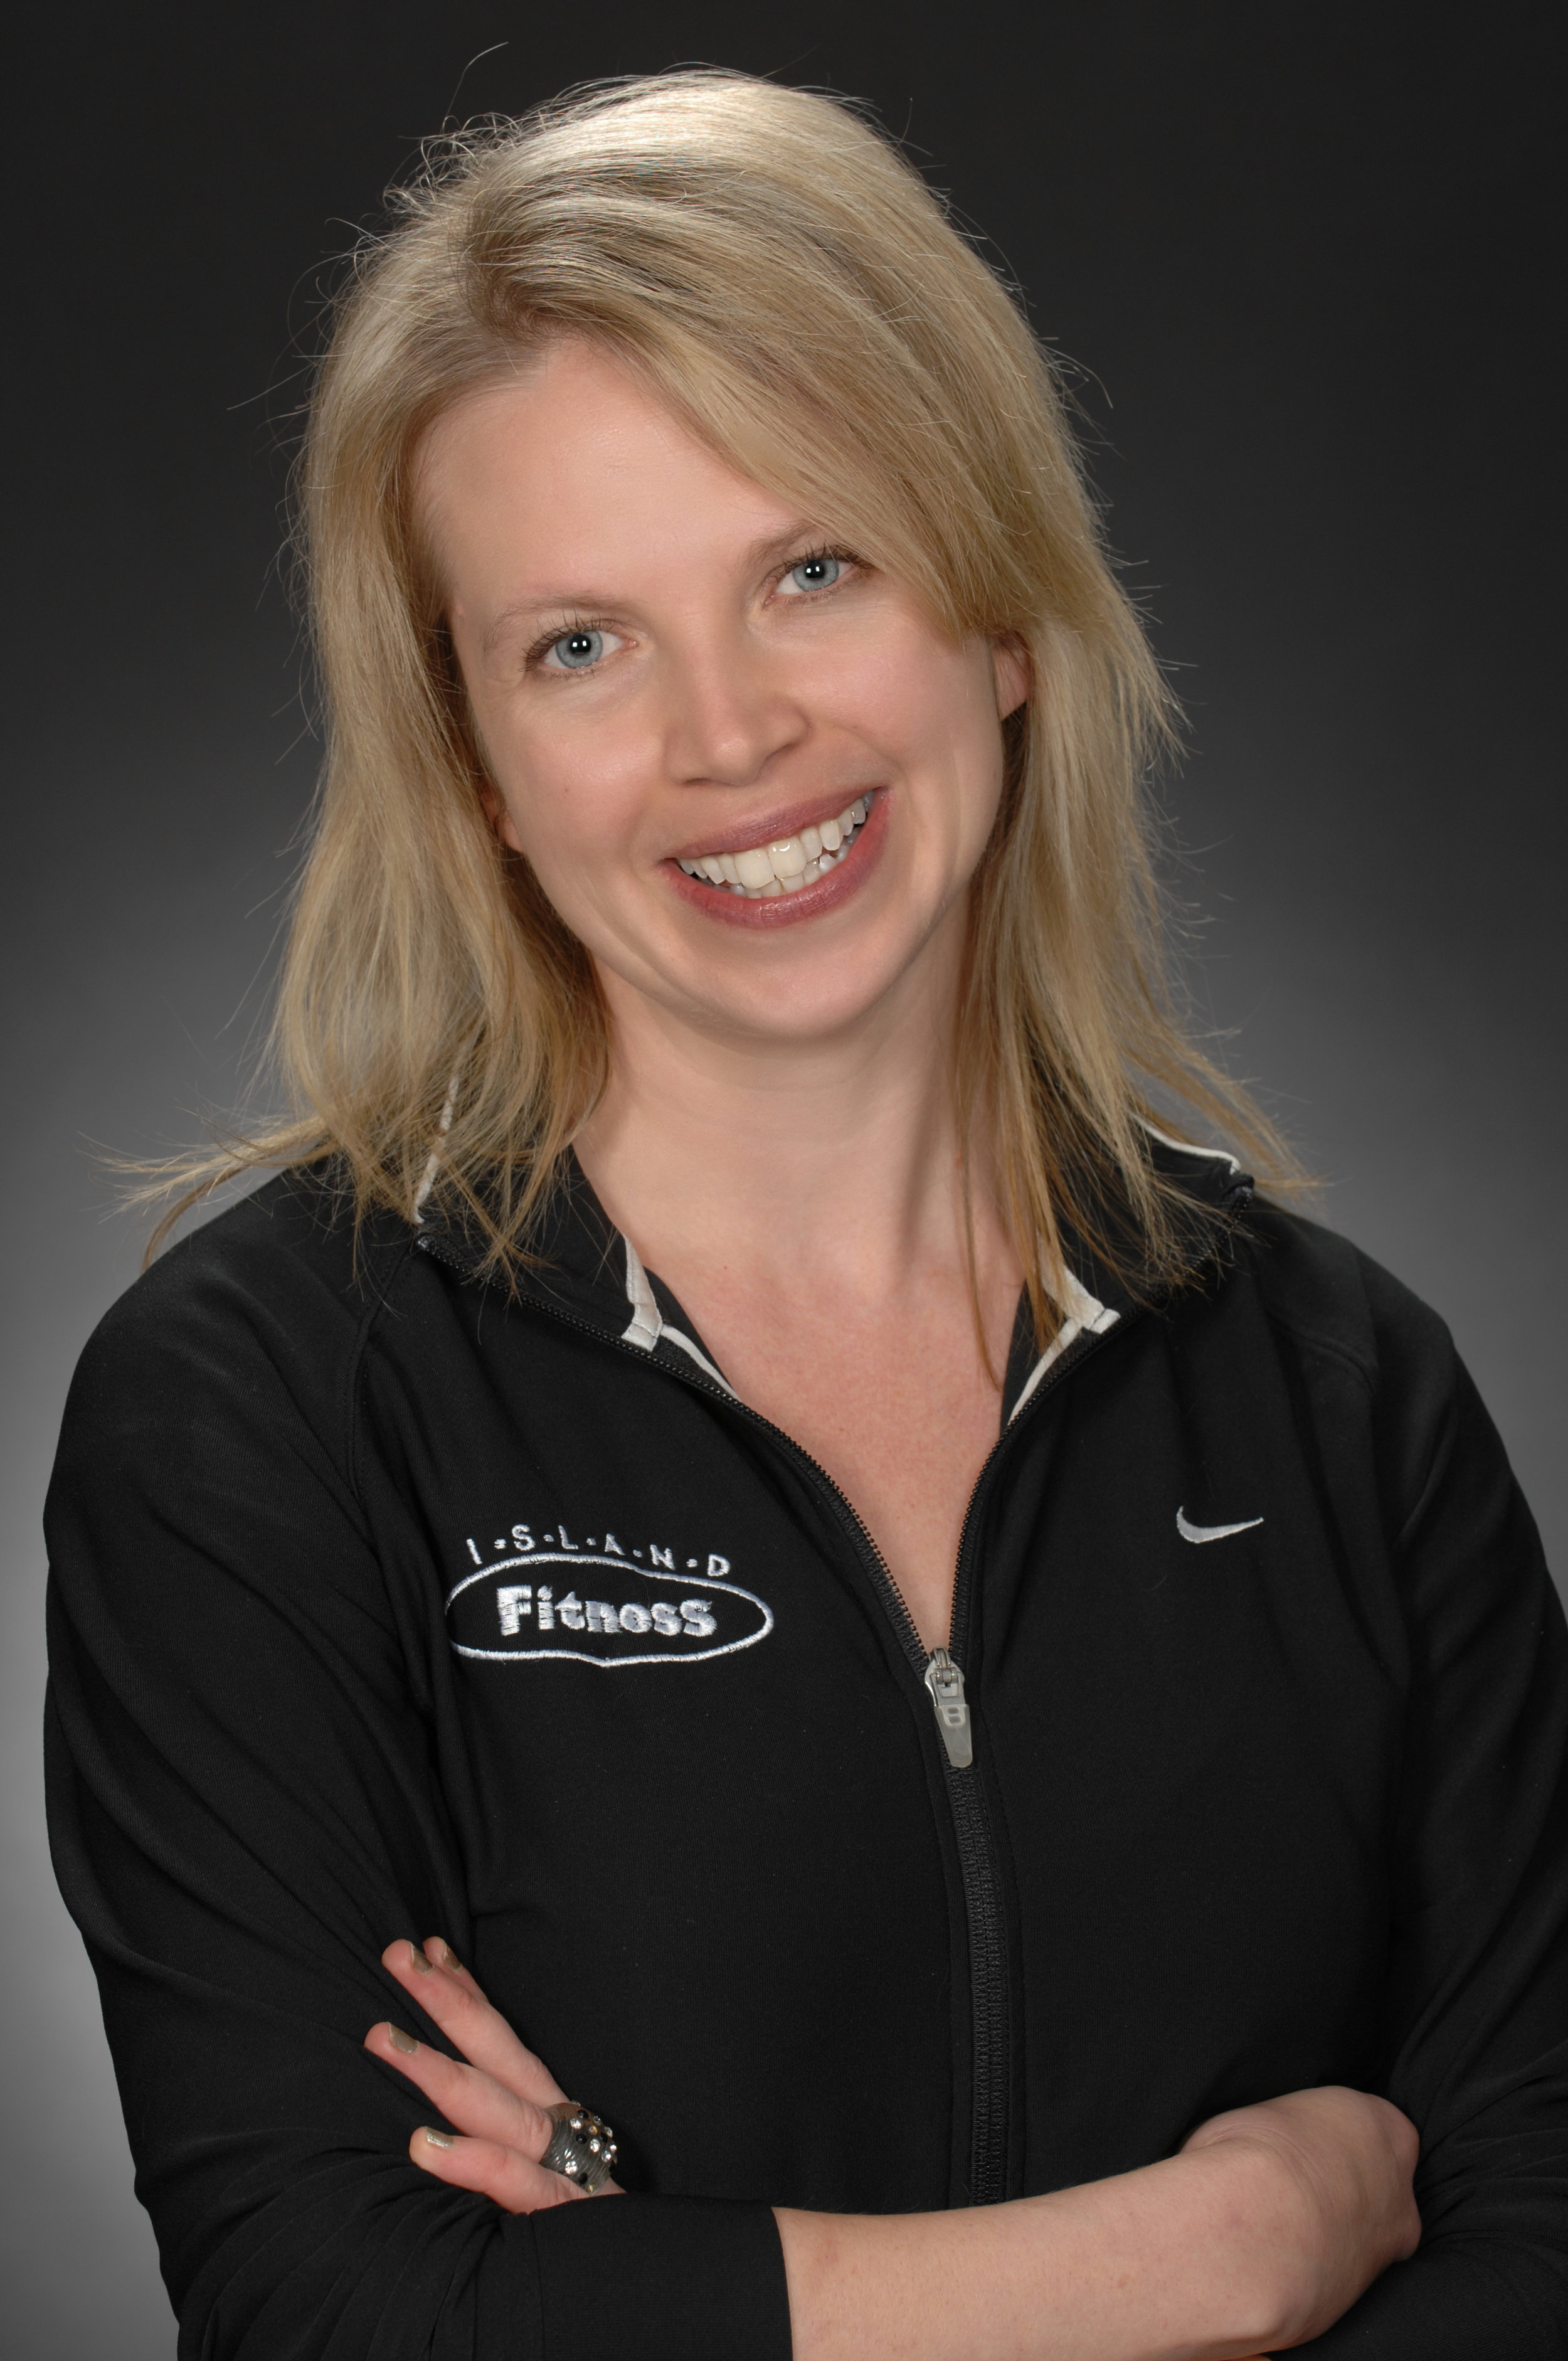 BETH COOK | Group Fitness Manager